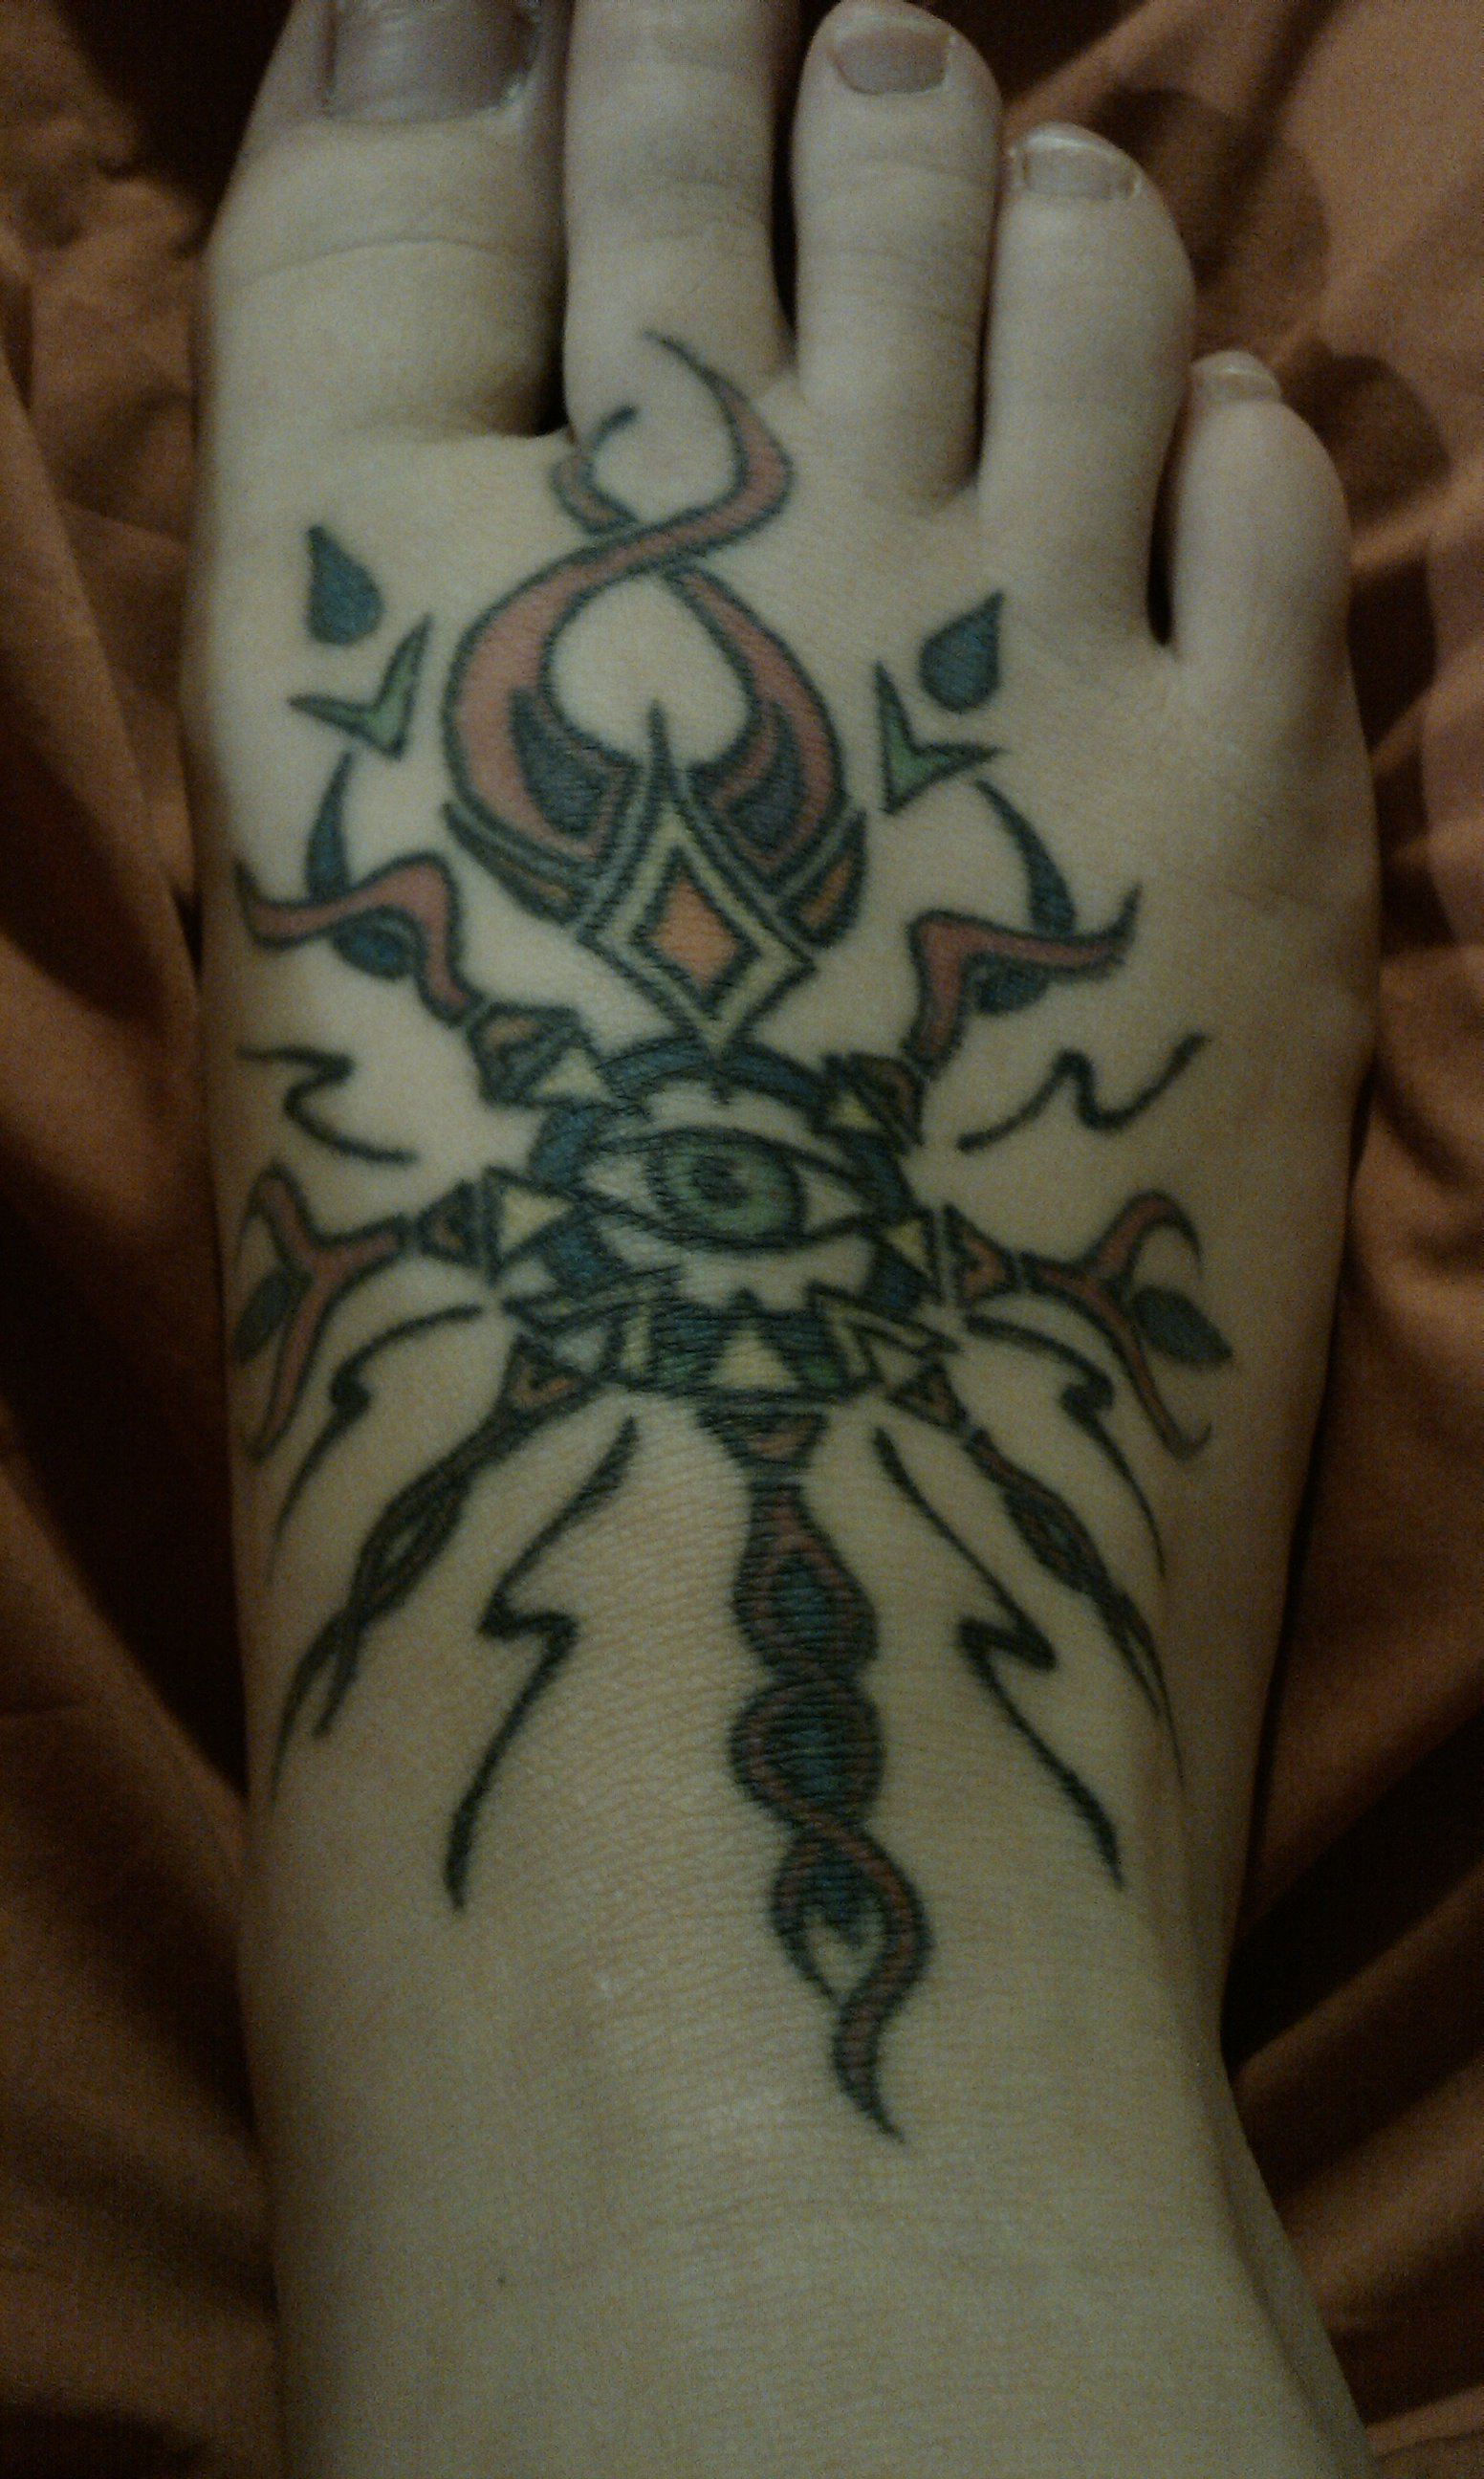 2nd tattoo tribal sun on foot